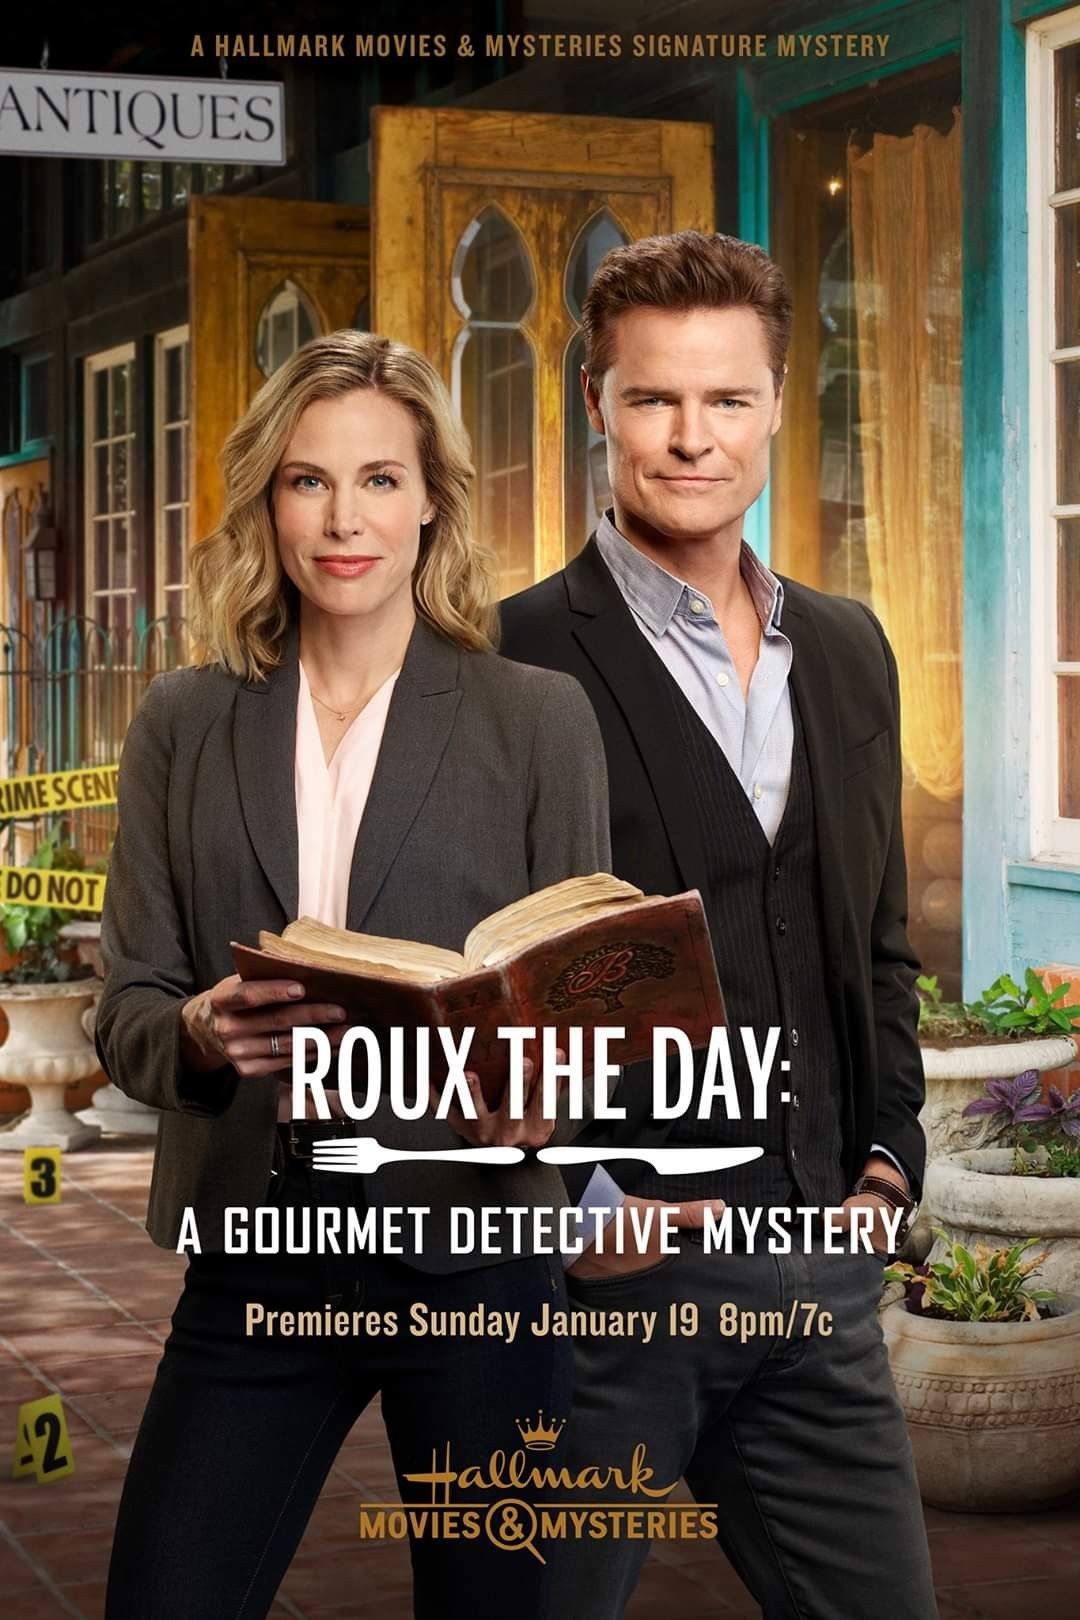 Pin by Lorie Ortiz on Great Hallmark Movies in 2020